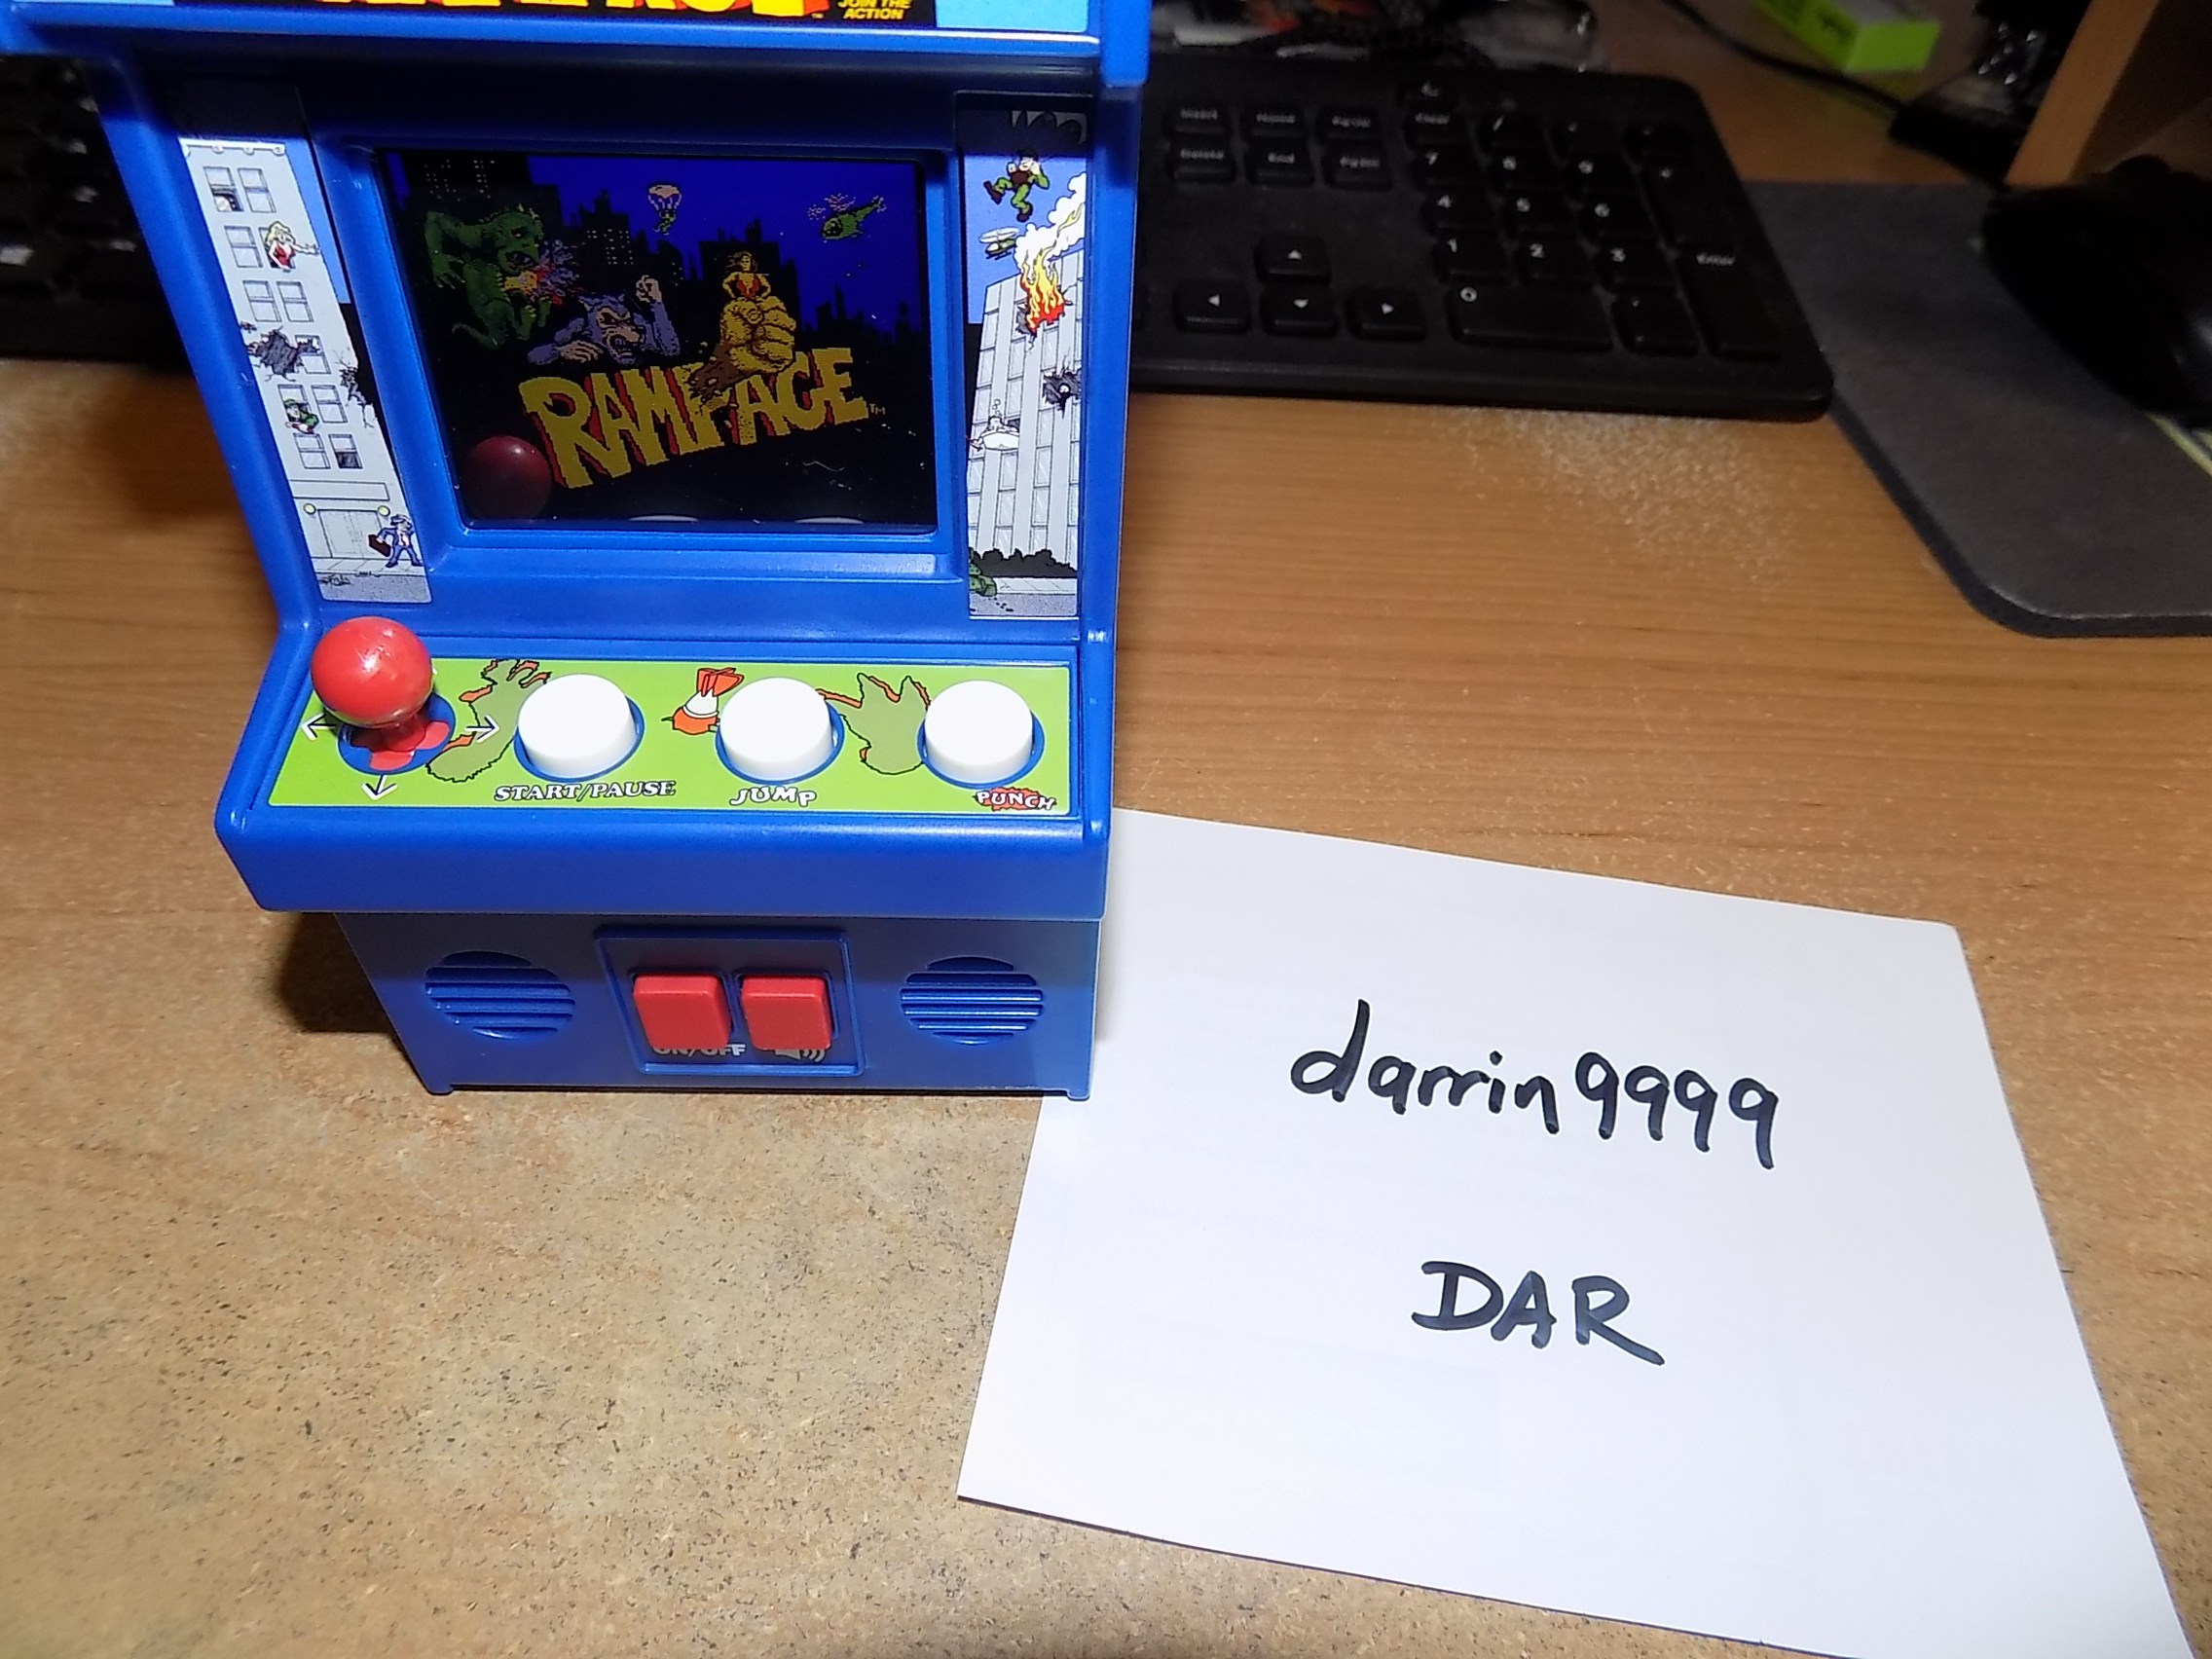 darrin9999: Arcade Classics 10: Rampage (Dedicated Handheld) 51,500 points on 2018-03-21 16:45:07